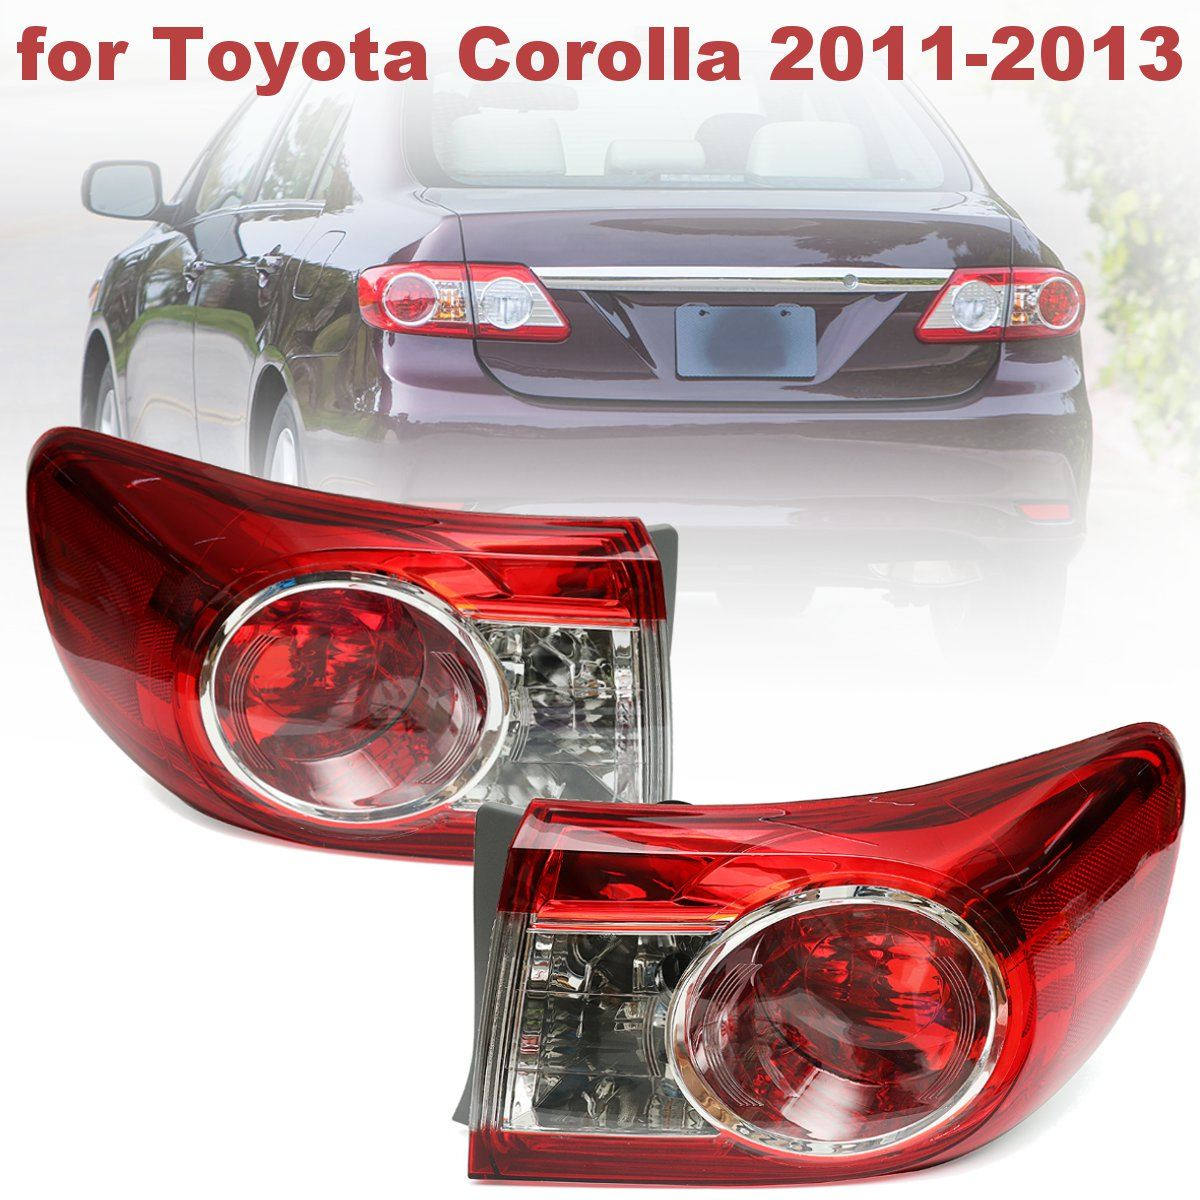 #TO2804111 #81560-02580 Replacement Pair Red Rear Left Right Side Tail Lights Brake Lamps for Toyota Corolla 2011 2012 2013 free shipping 2pc hexagon pattern abstract geometric body rear tail side graphic vinyl for toyota hilux vigo 2011 decals